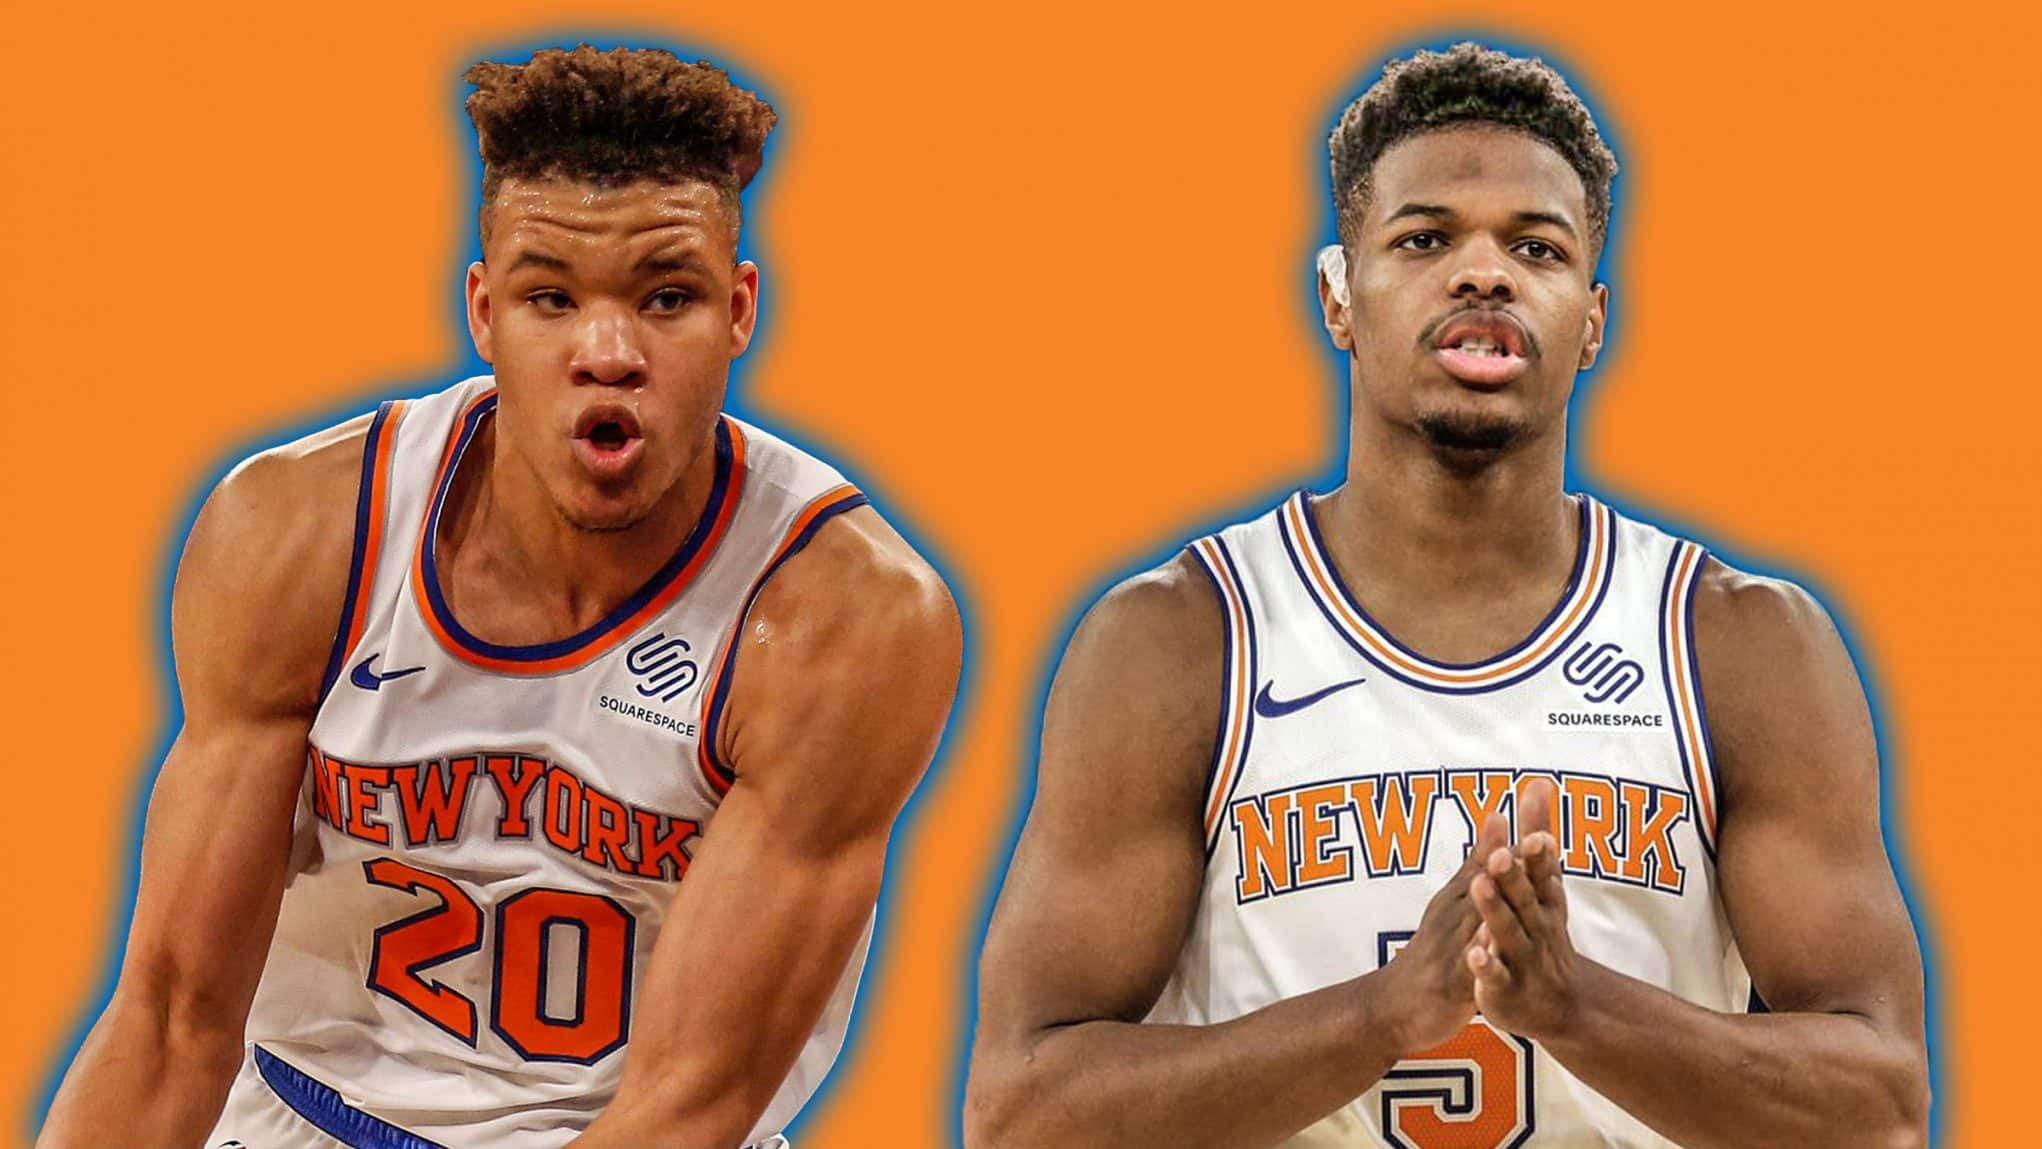 The unique paths players have taken to the New York Knicks